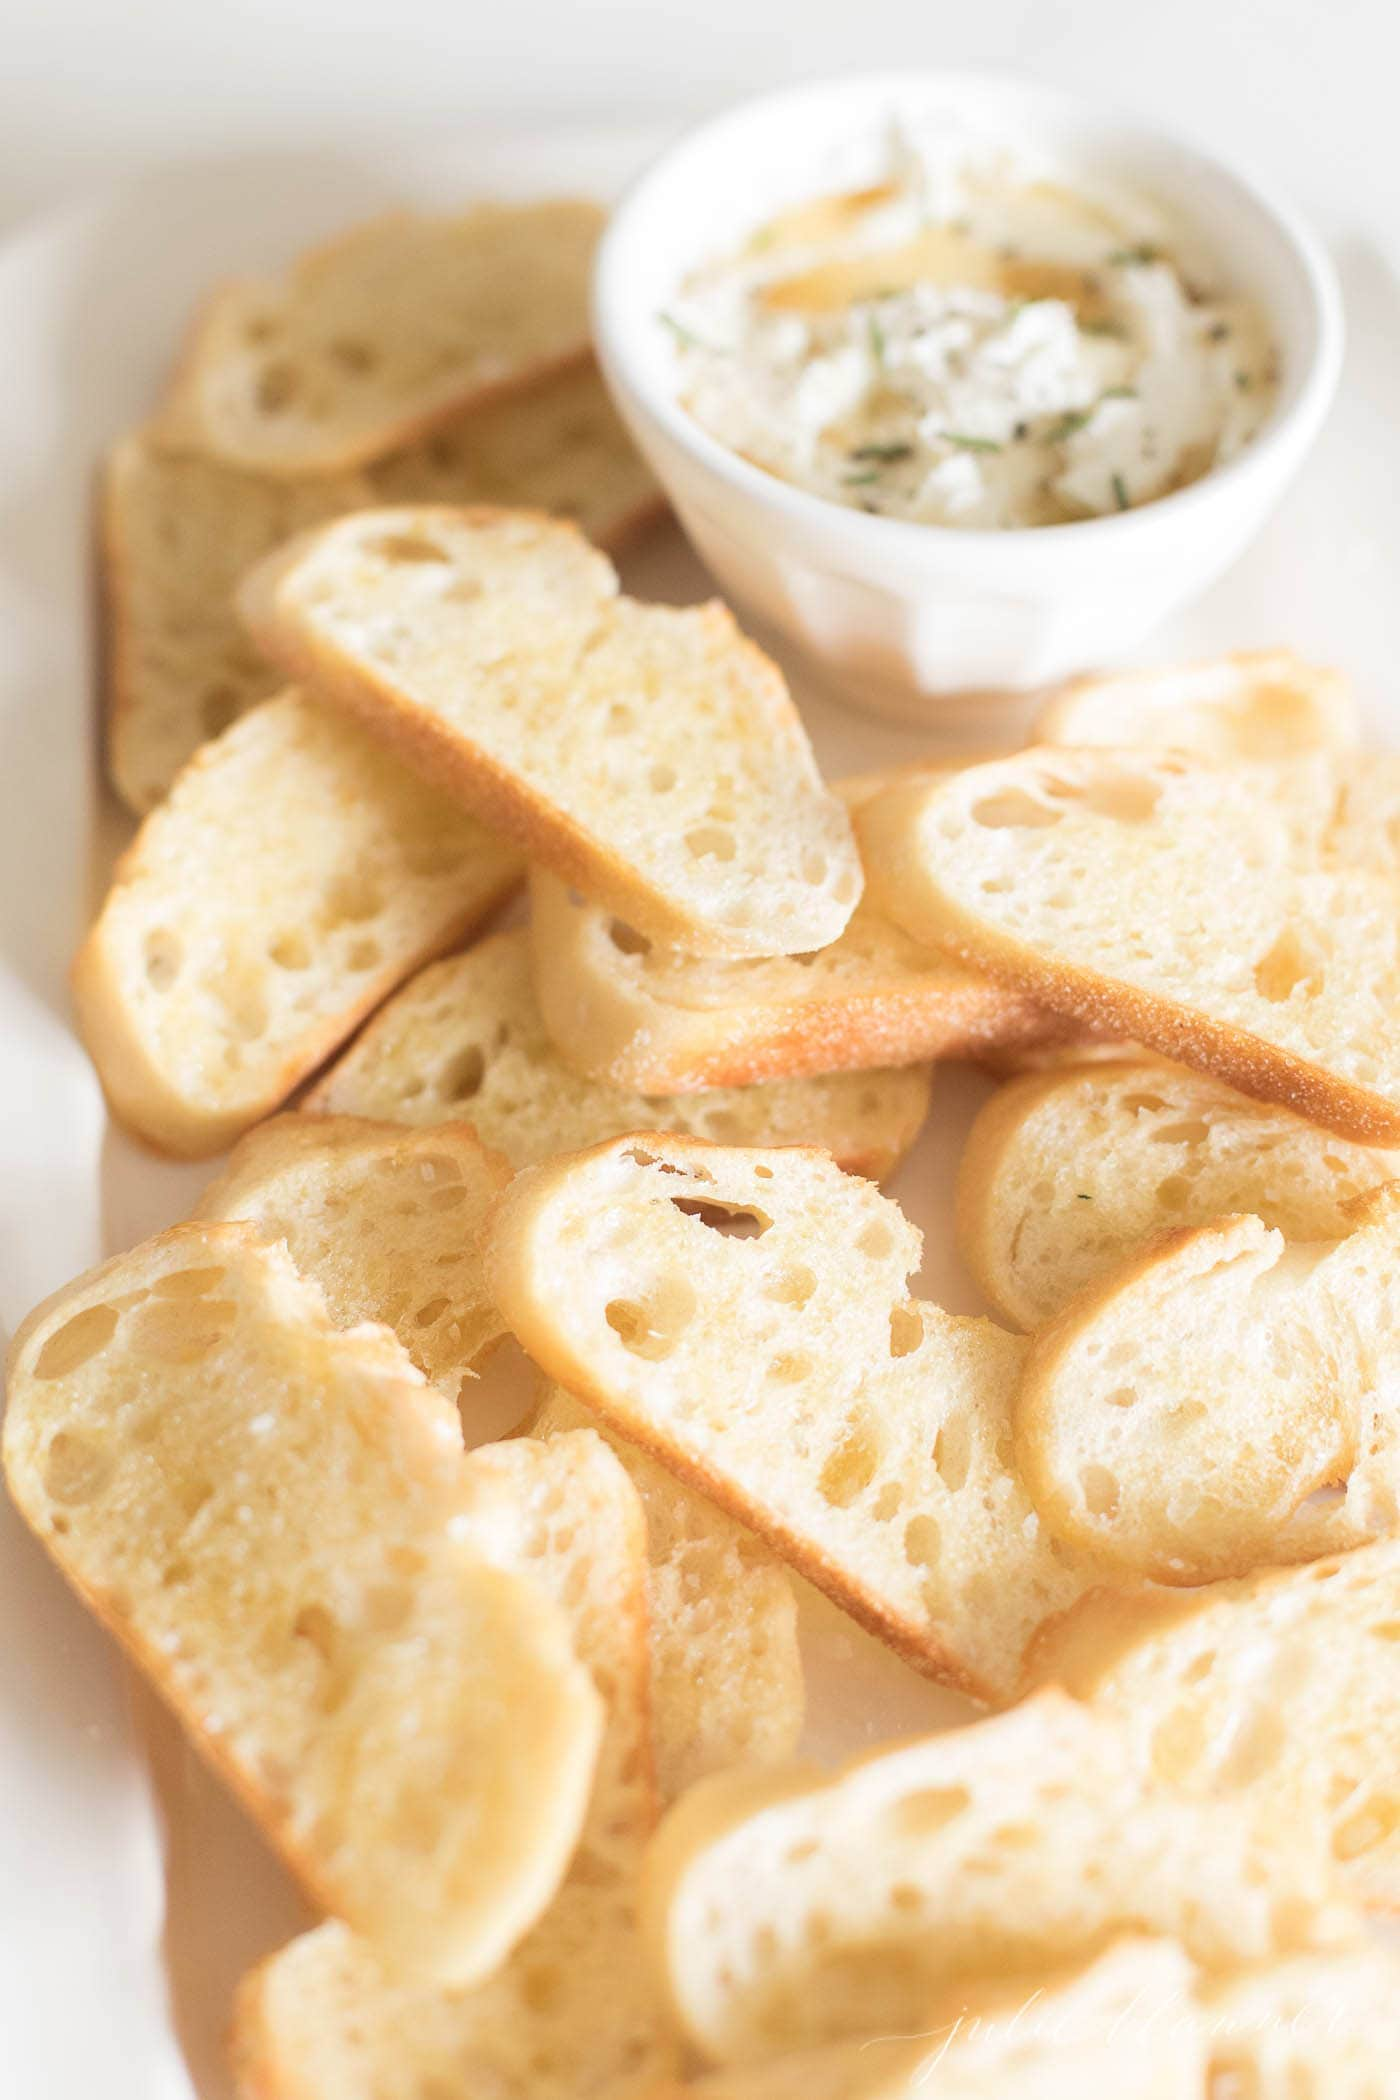 crostini slices on a white platter, dip in background